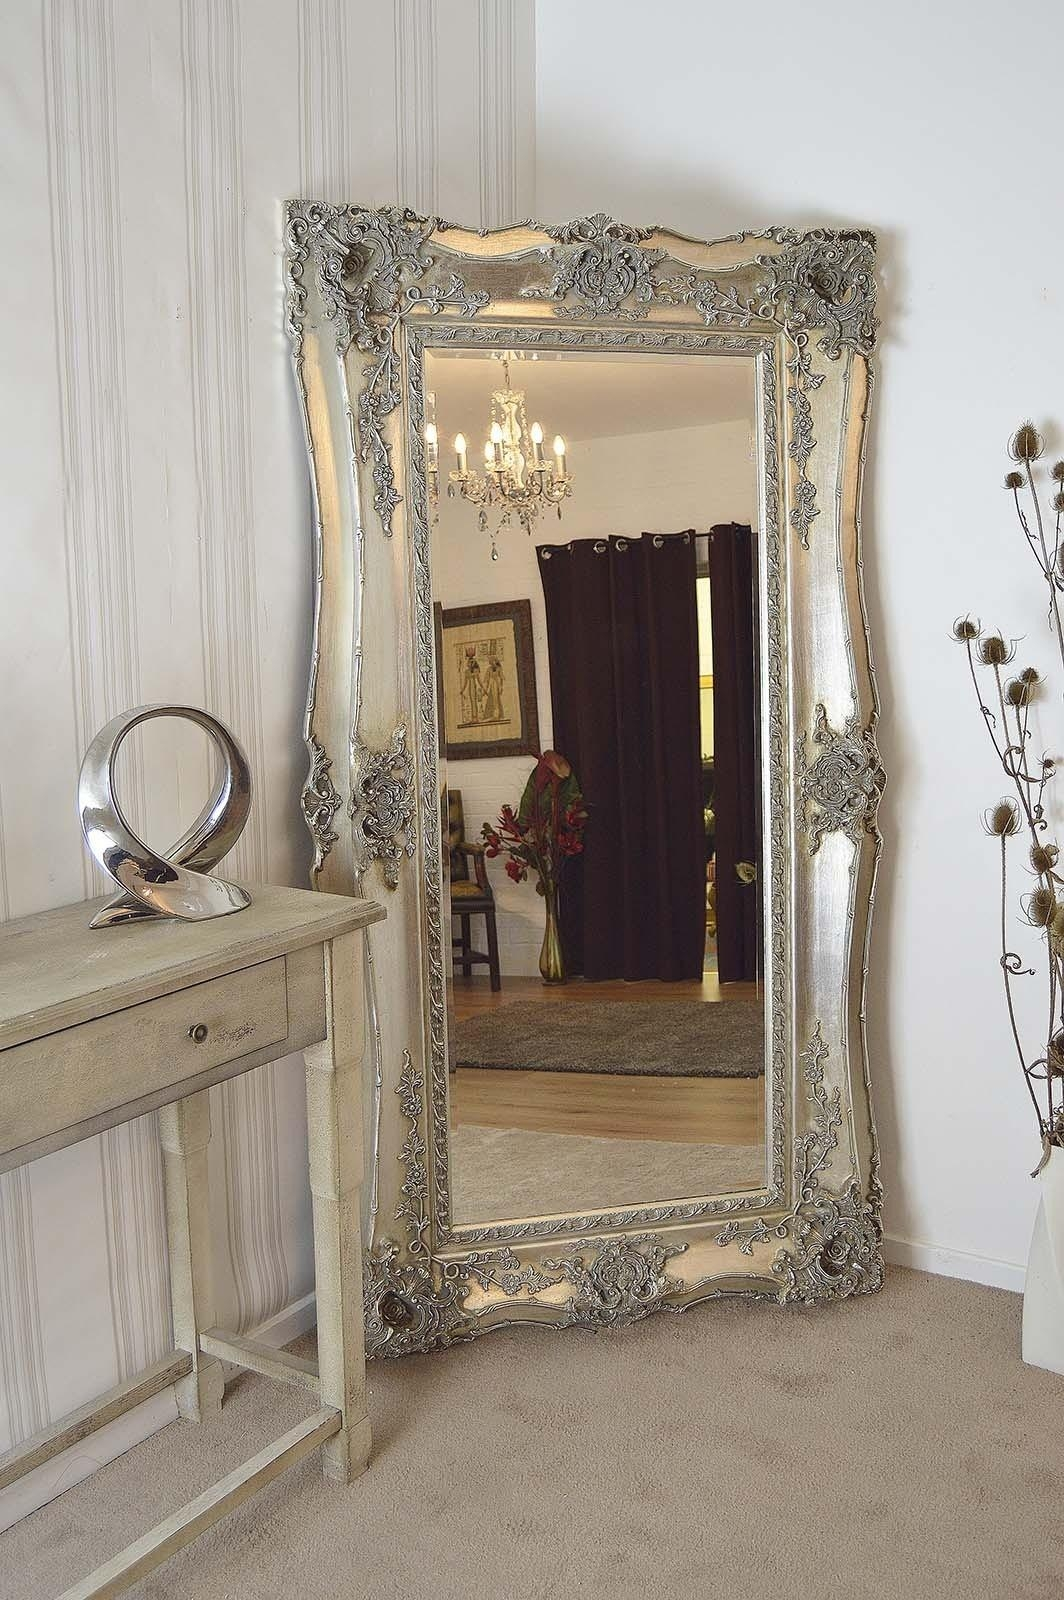 Large Antique Wall Mirror Ornate Frame Antique Ornate Wall Mirrors Regarding Big Antique Mirror (View 3 of 20)